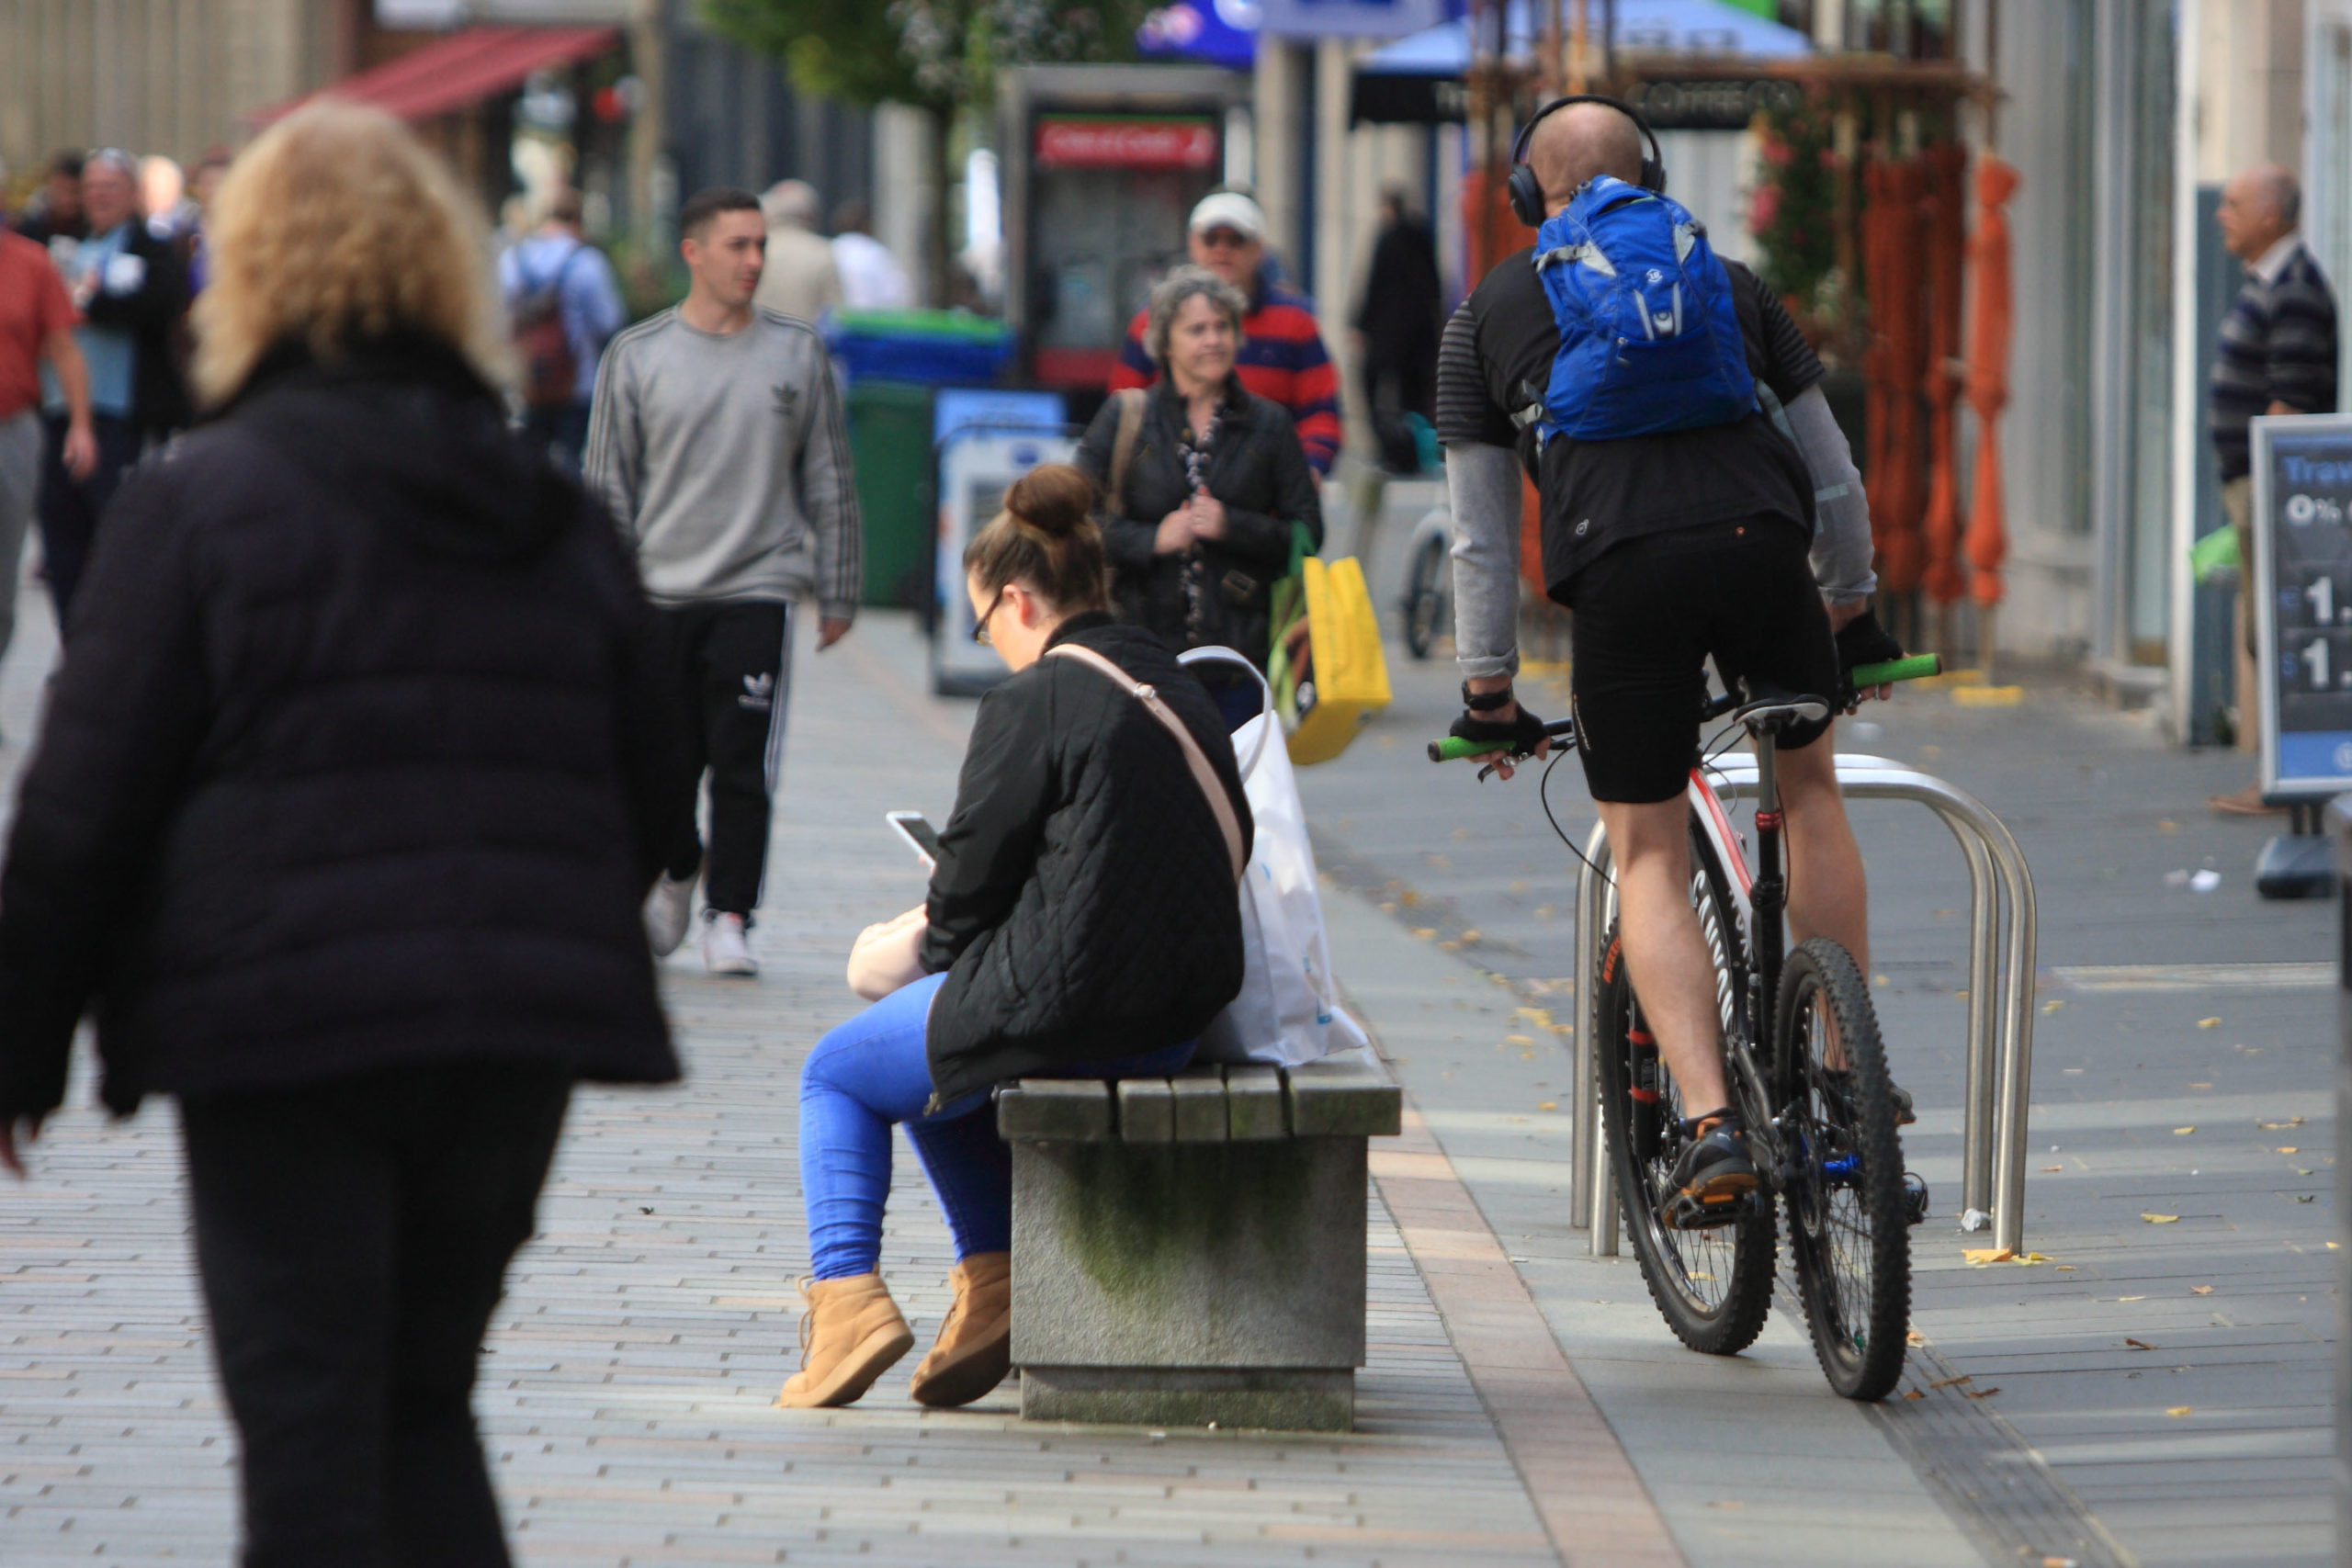 Cyclist in High St Perth at great speed narrowly missing pedestrians Pic Phil Hannah